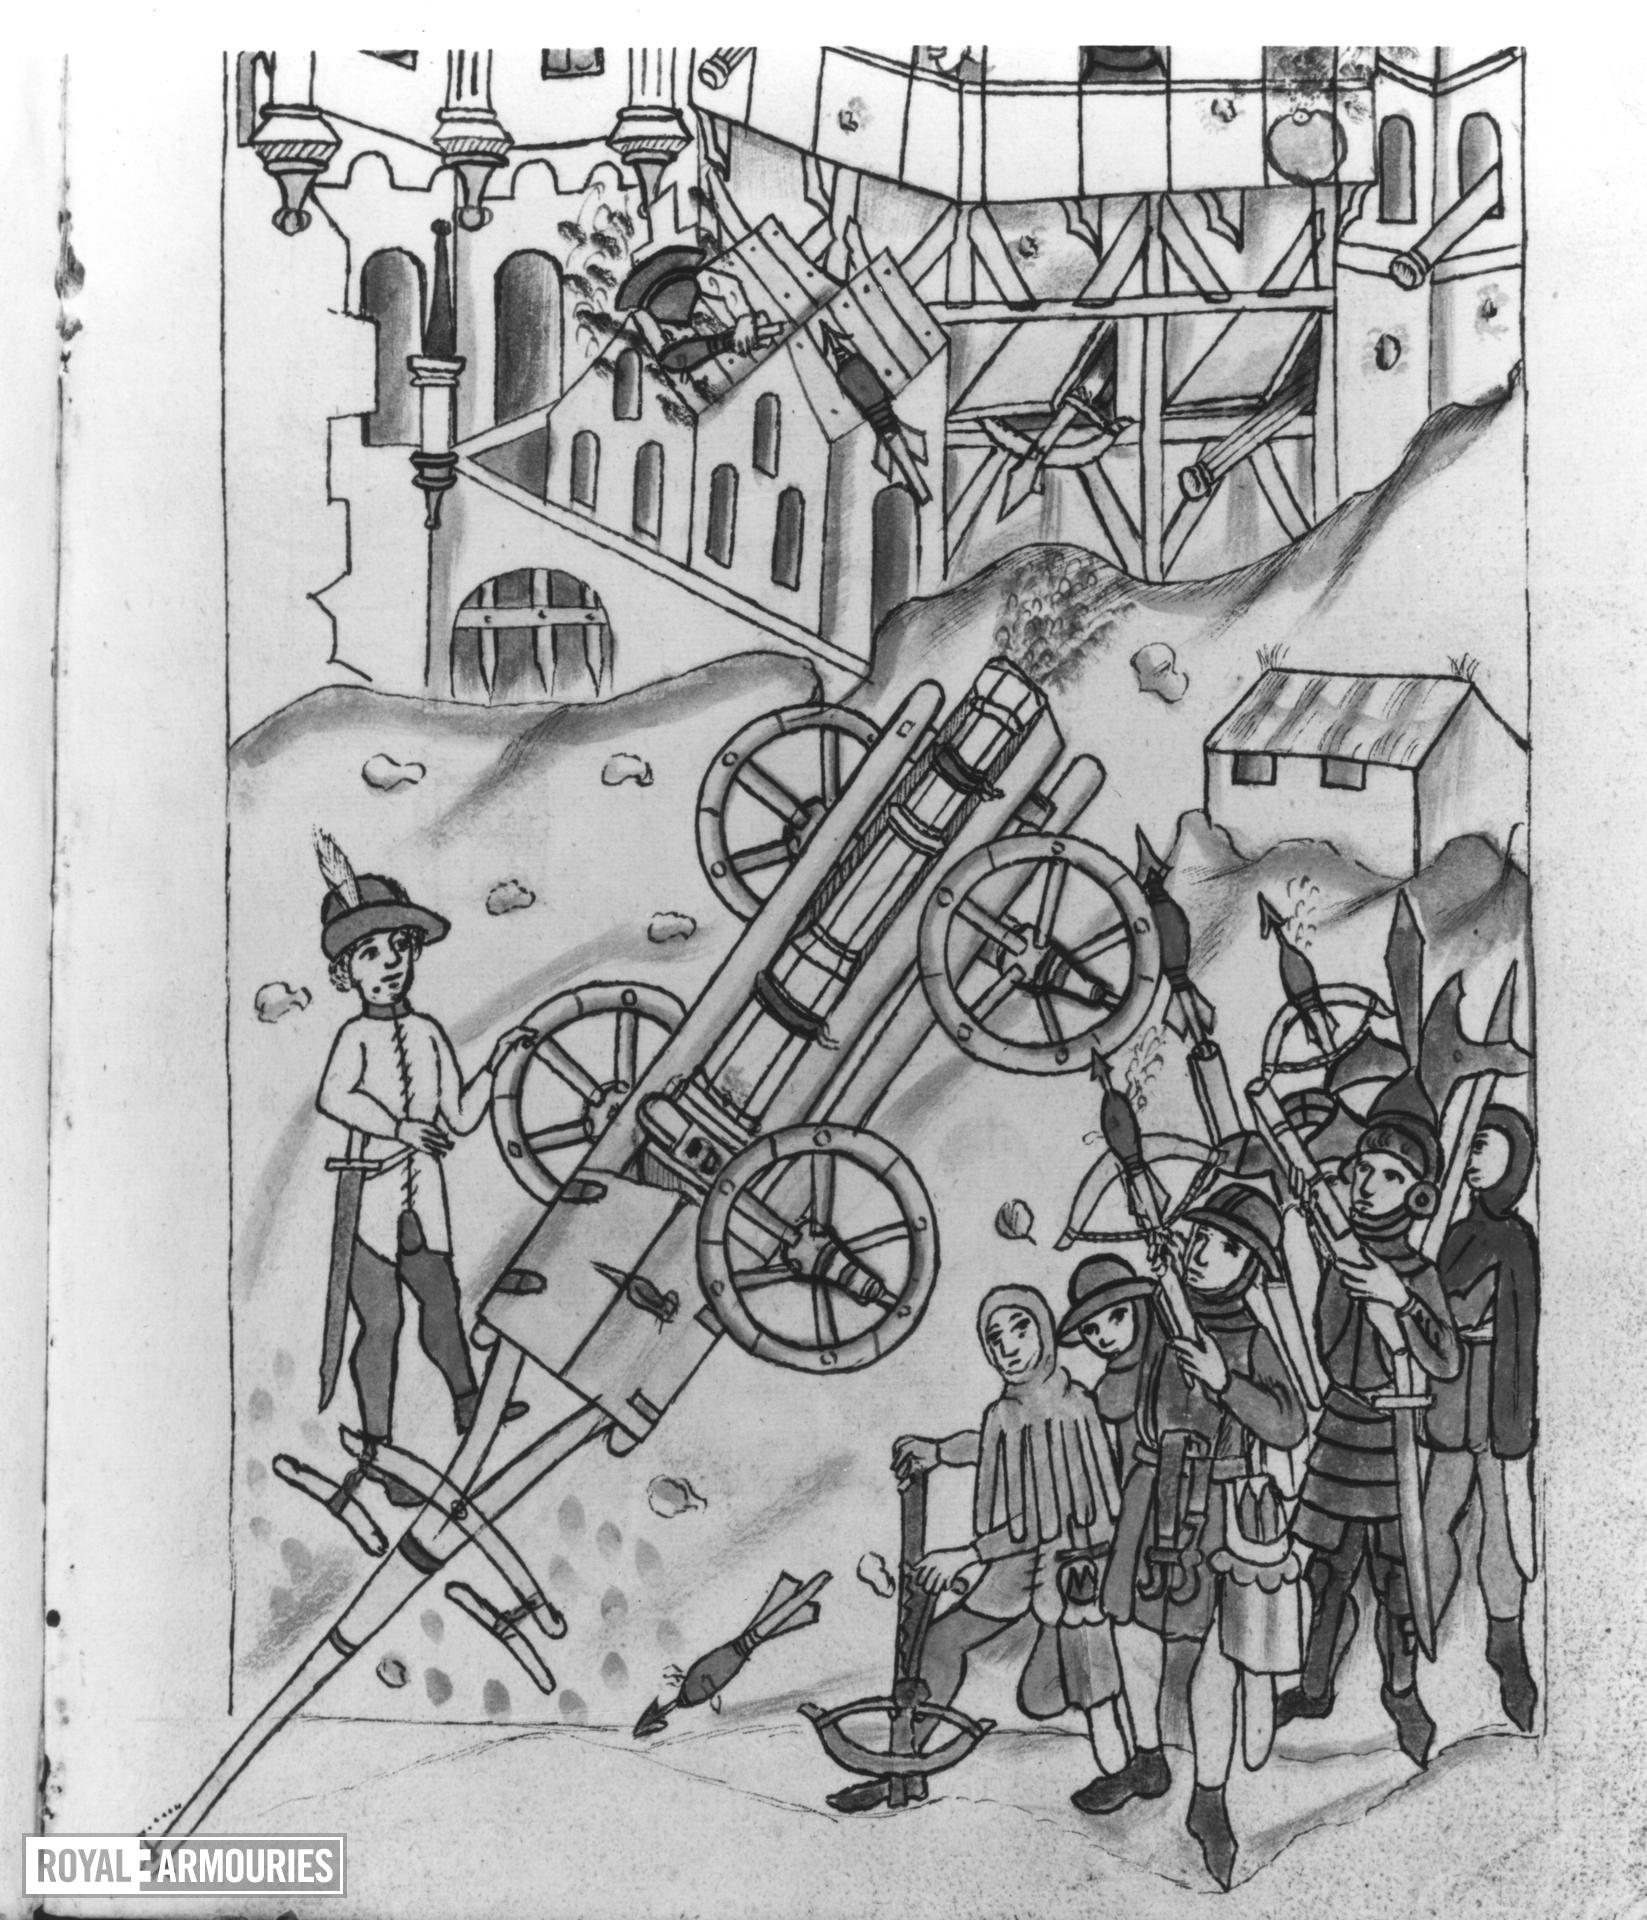 Manuscript, Firework book showing the manufacture and use of gunpowder